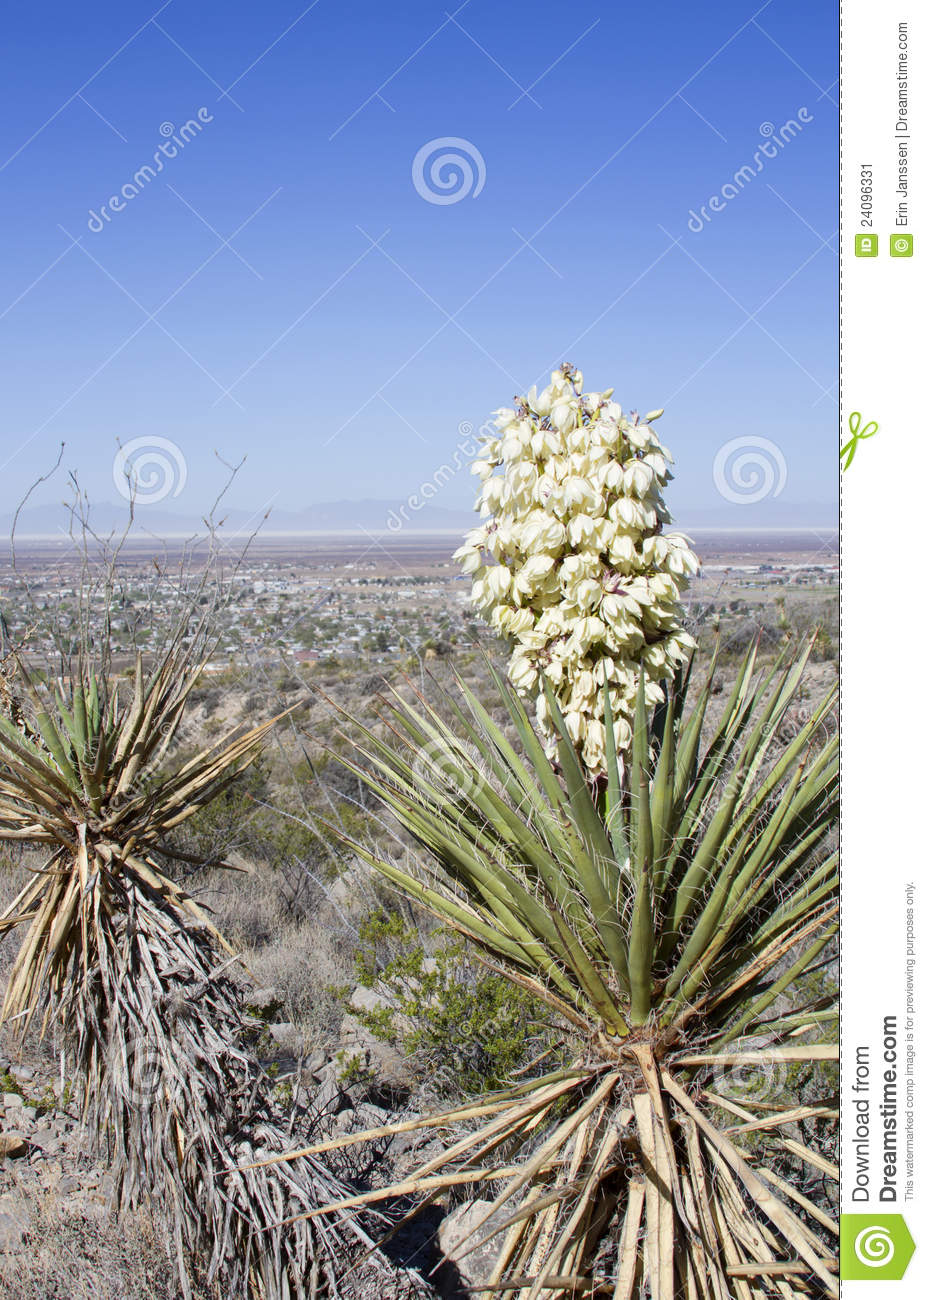 Yucca plant with white flowers stock image image of america yucca plant with white flowers mightylinksfo